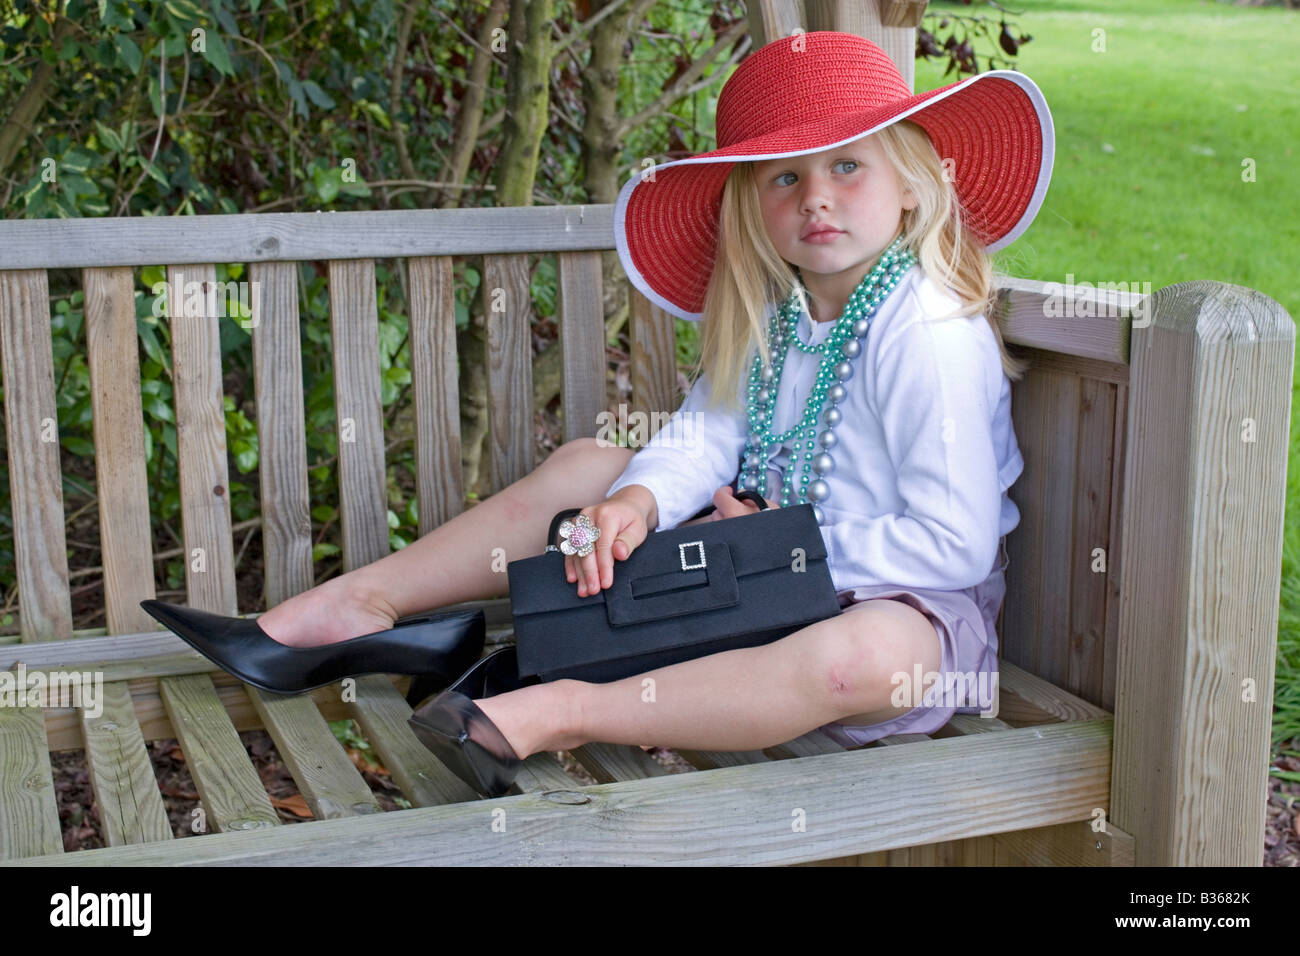 3 year old girl in garden dressing up in grown up clothing - Stock Image